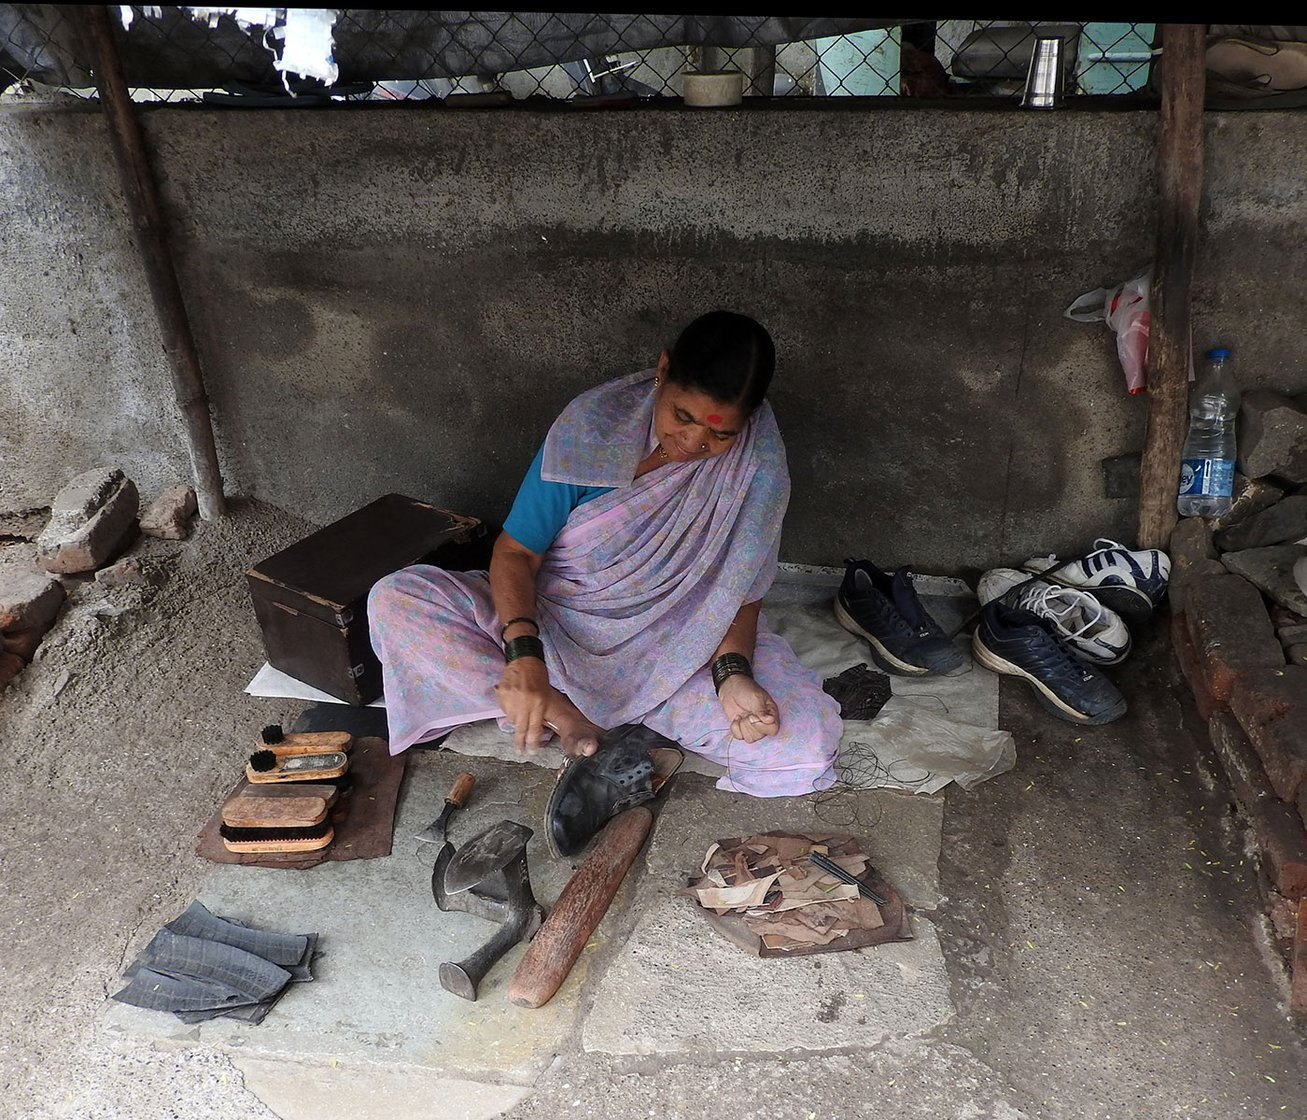 08-Bhamabai_BlackShoe1_DSCN1471(Crop)-NW-Fixing Straps and Mending Soles.jpg